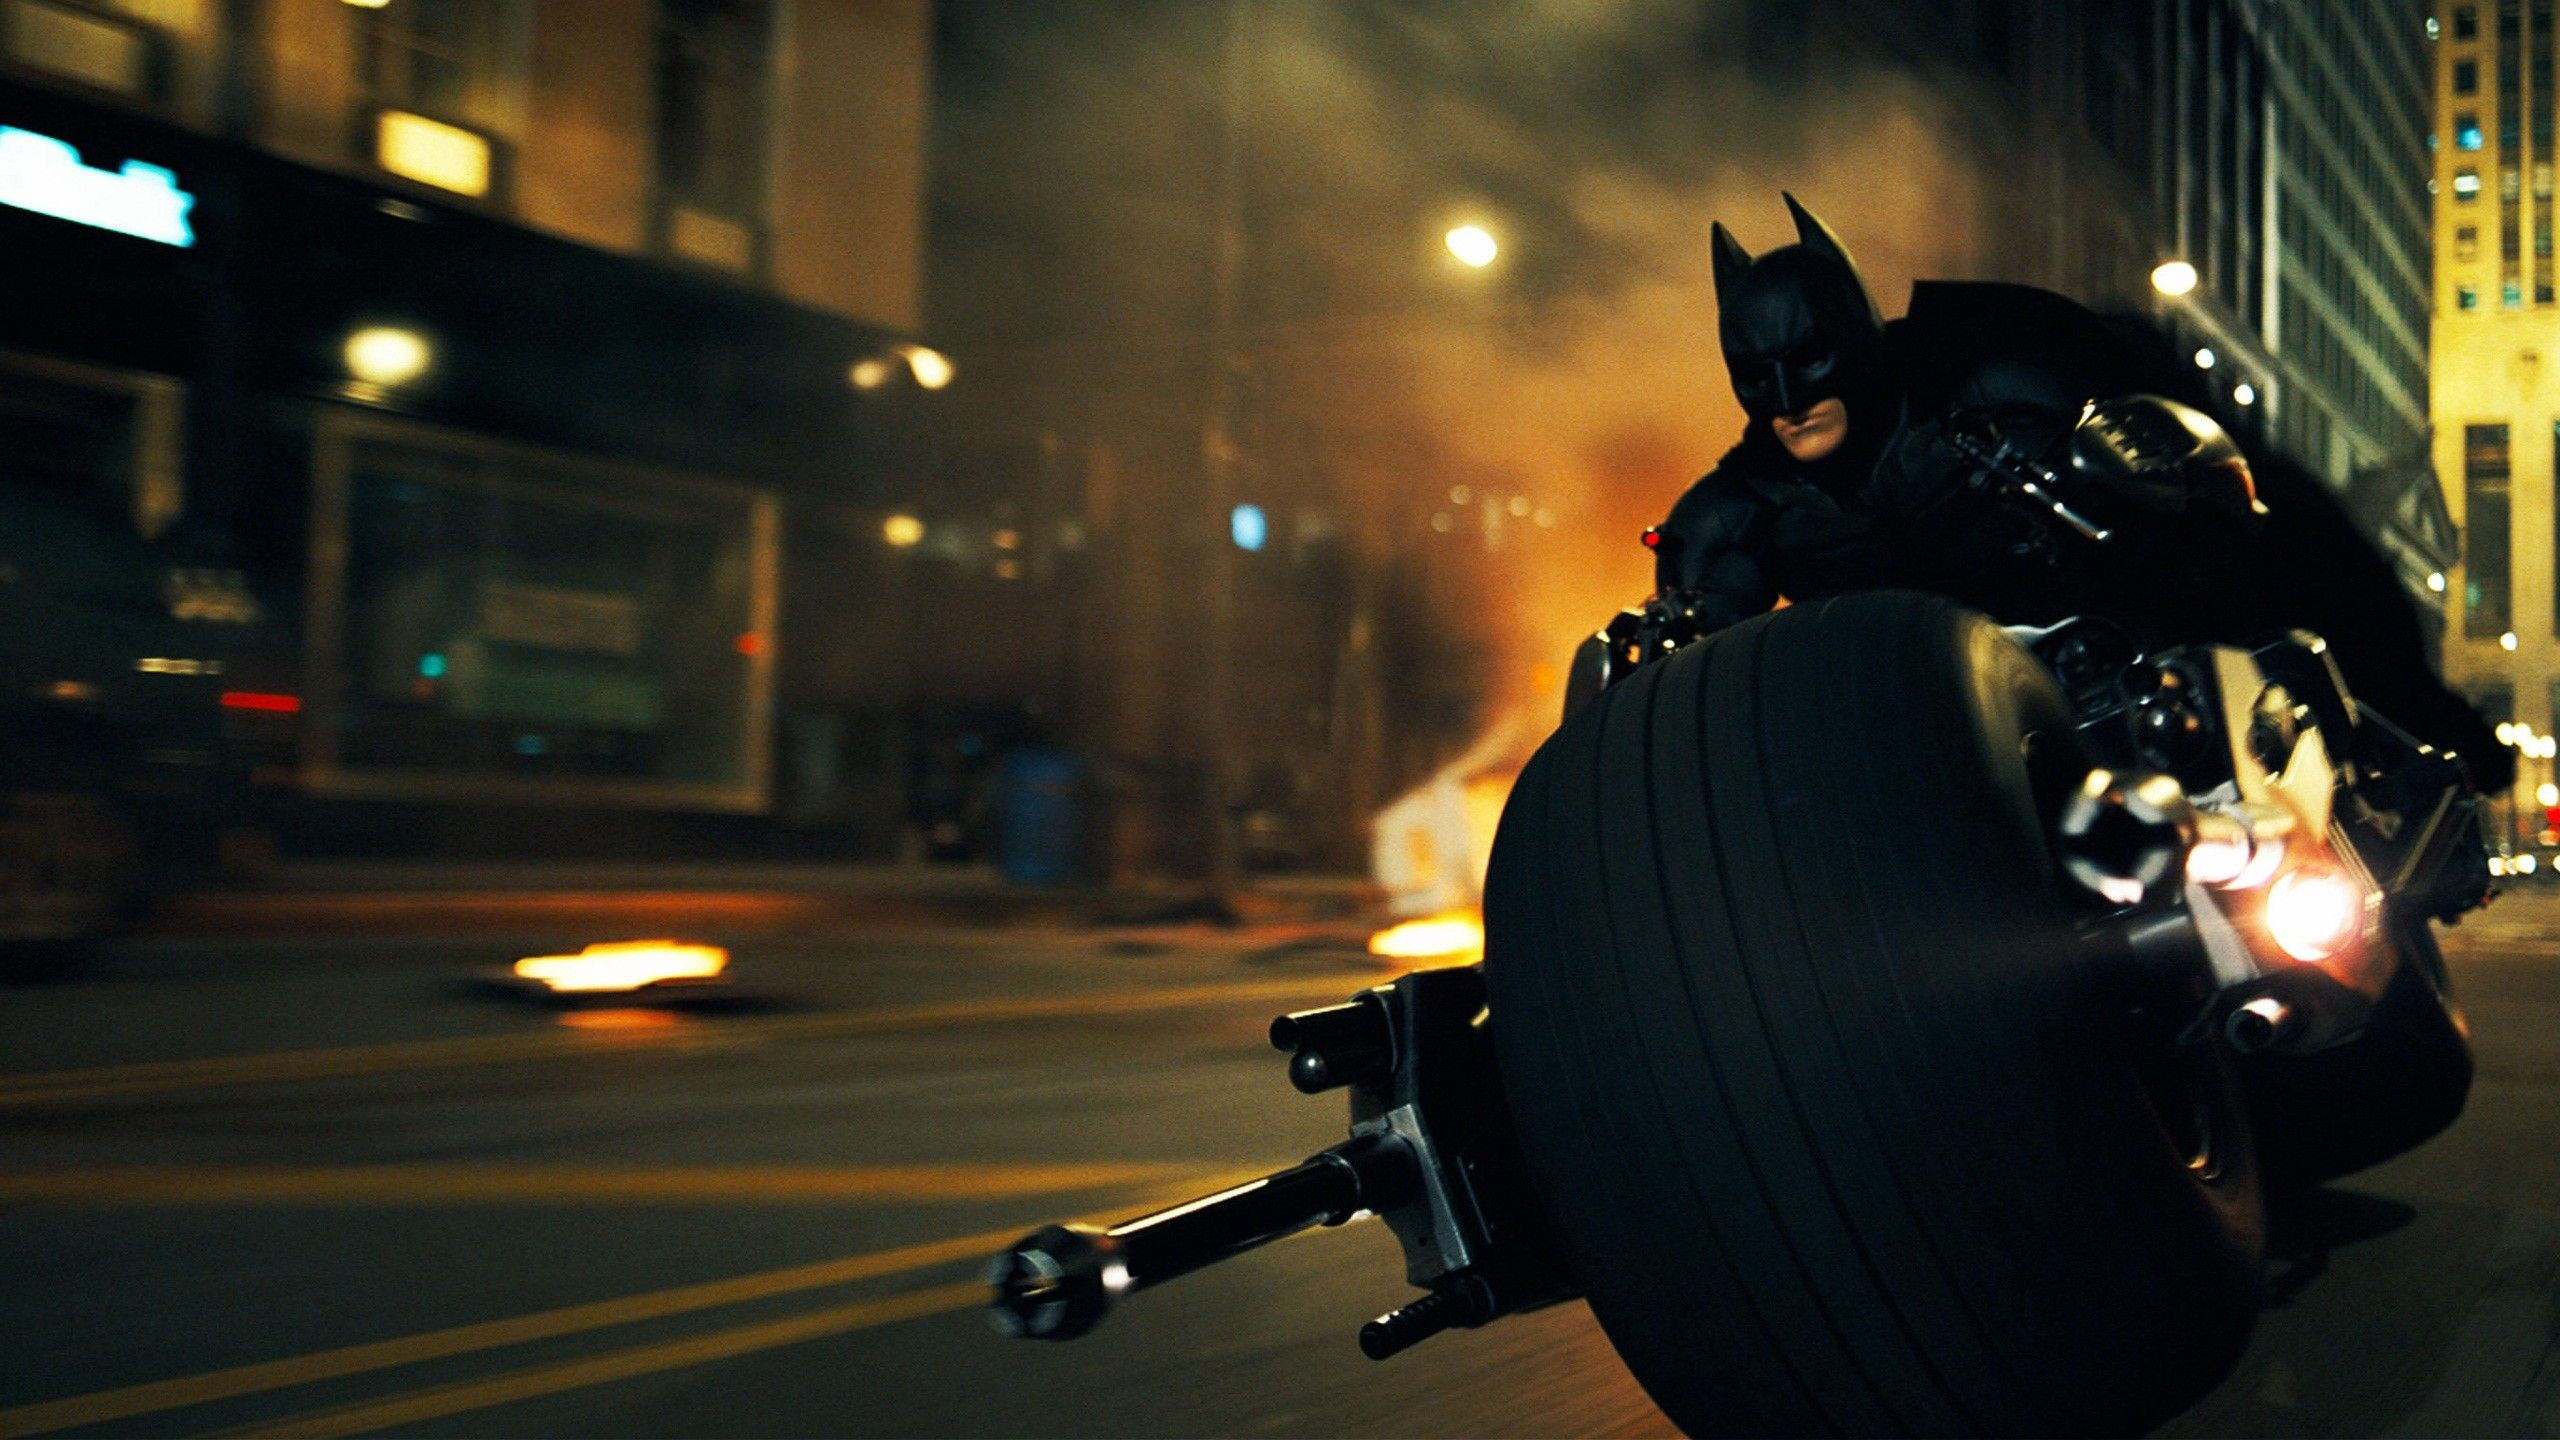 2560x1440 Batman The Dark Knight Rises 1080p HD Wallpaper For Desktop